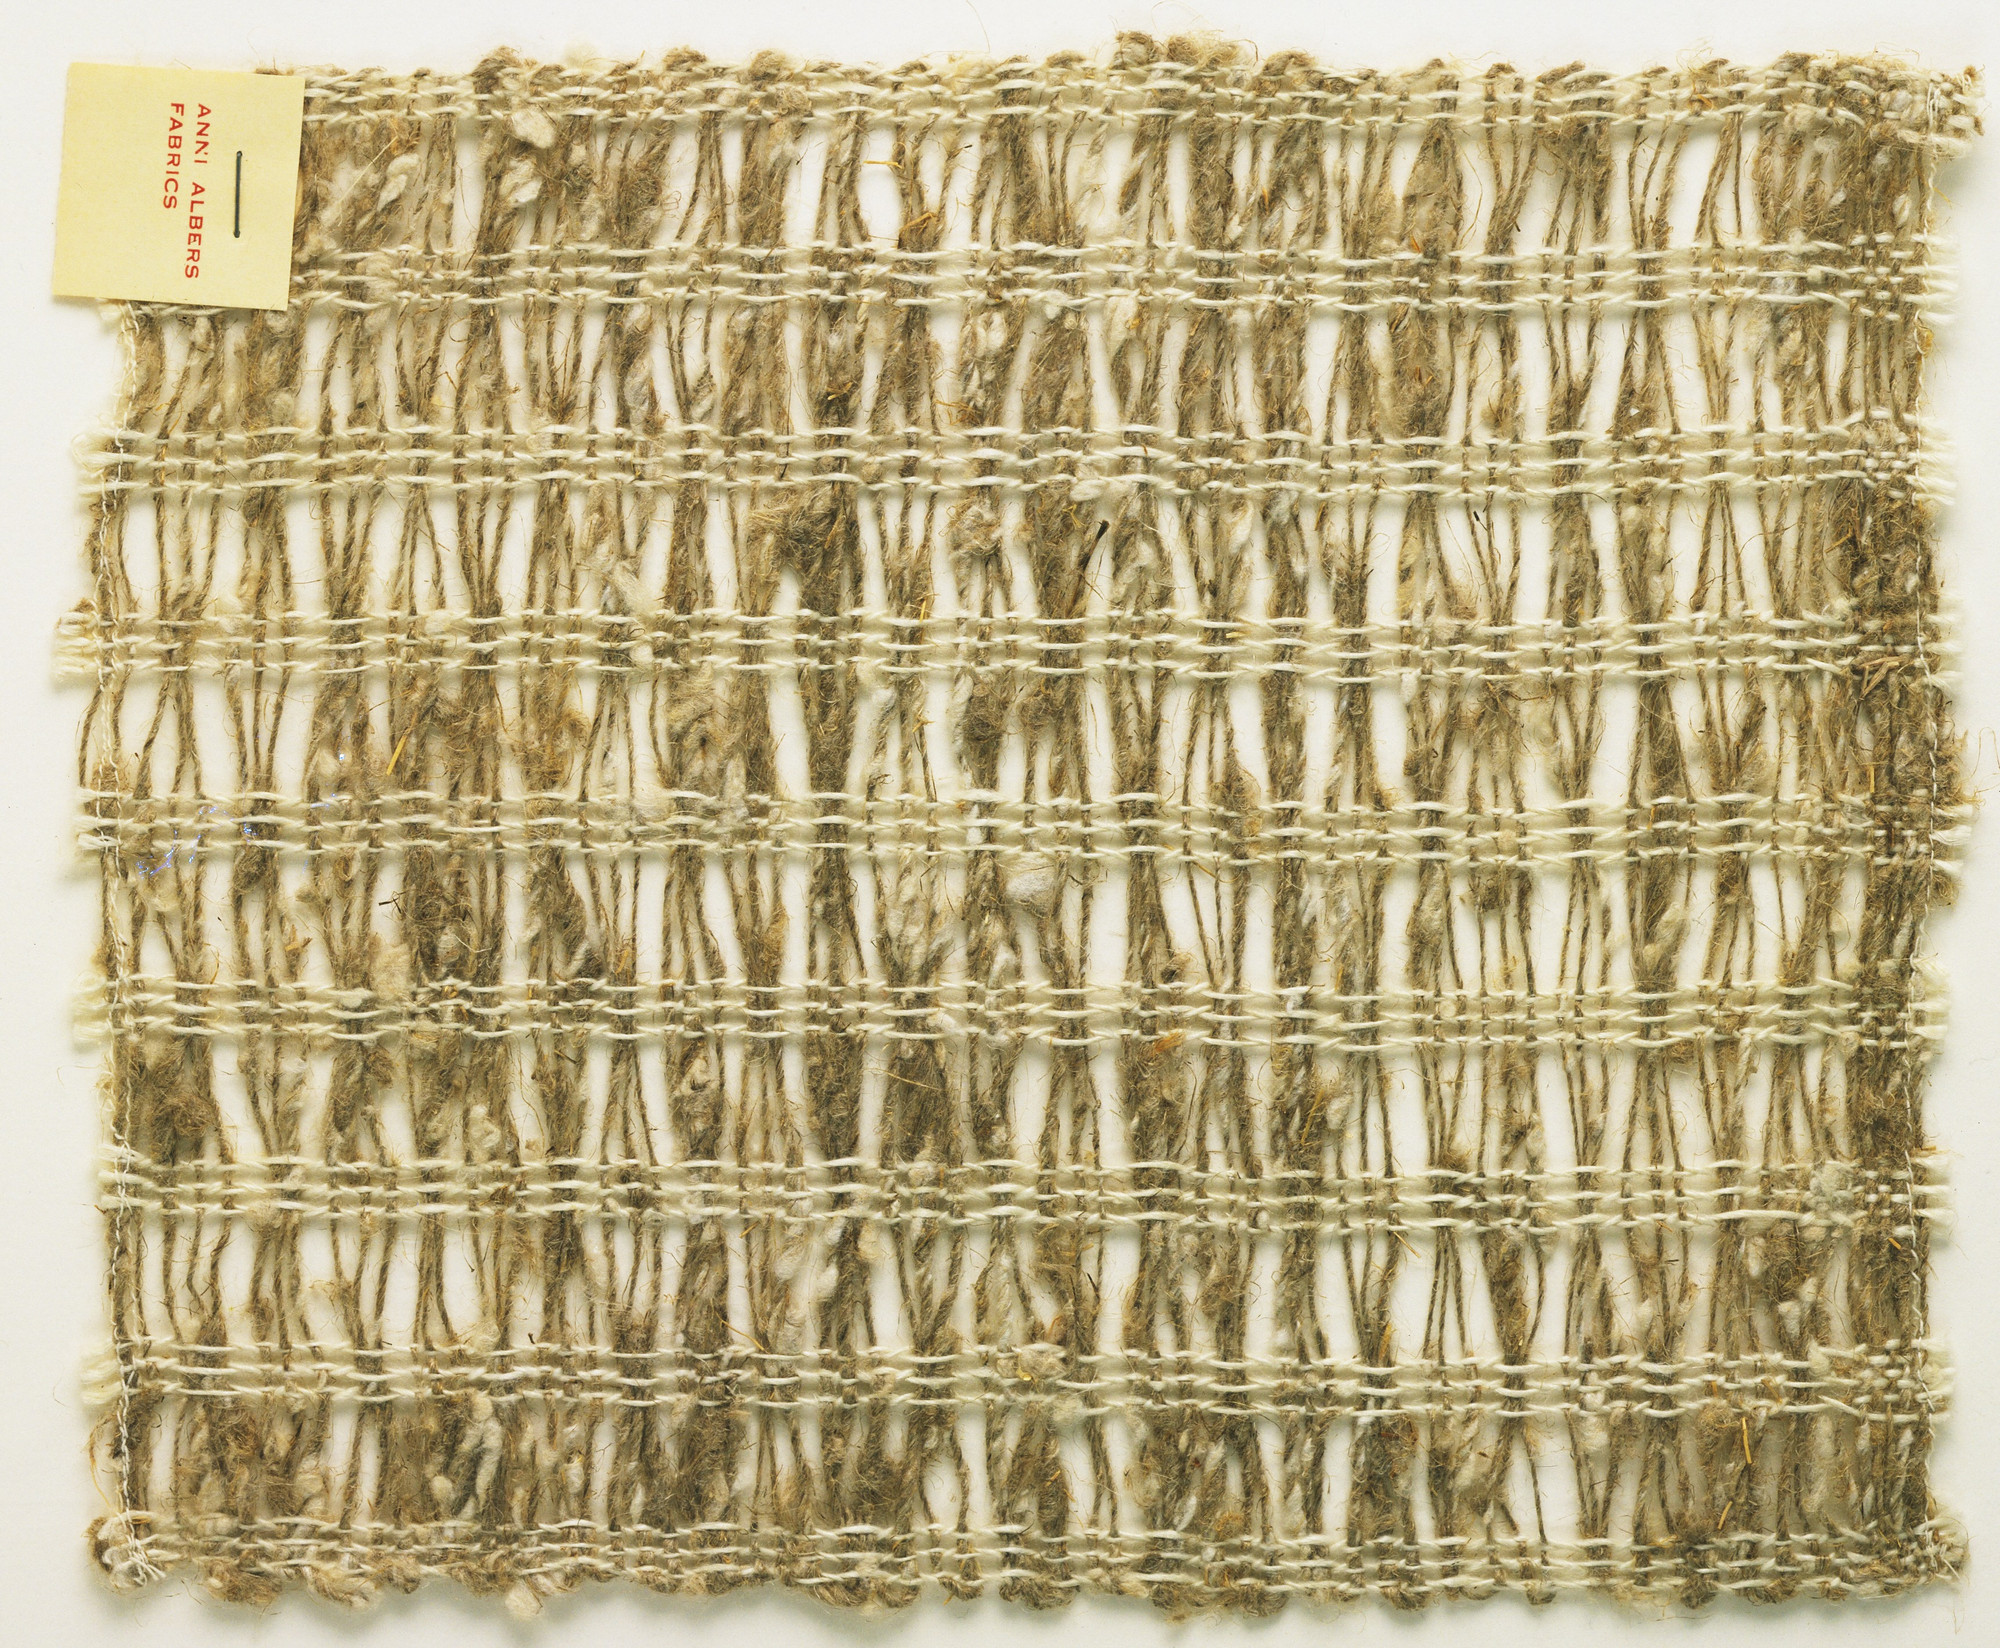 Anni Albers. Woven Fabric Sample. After 1933